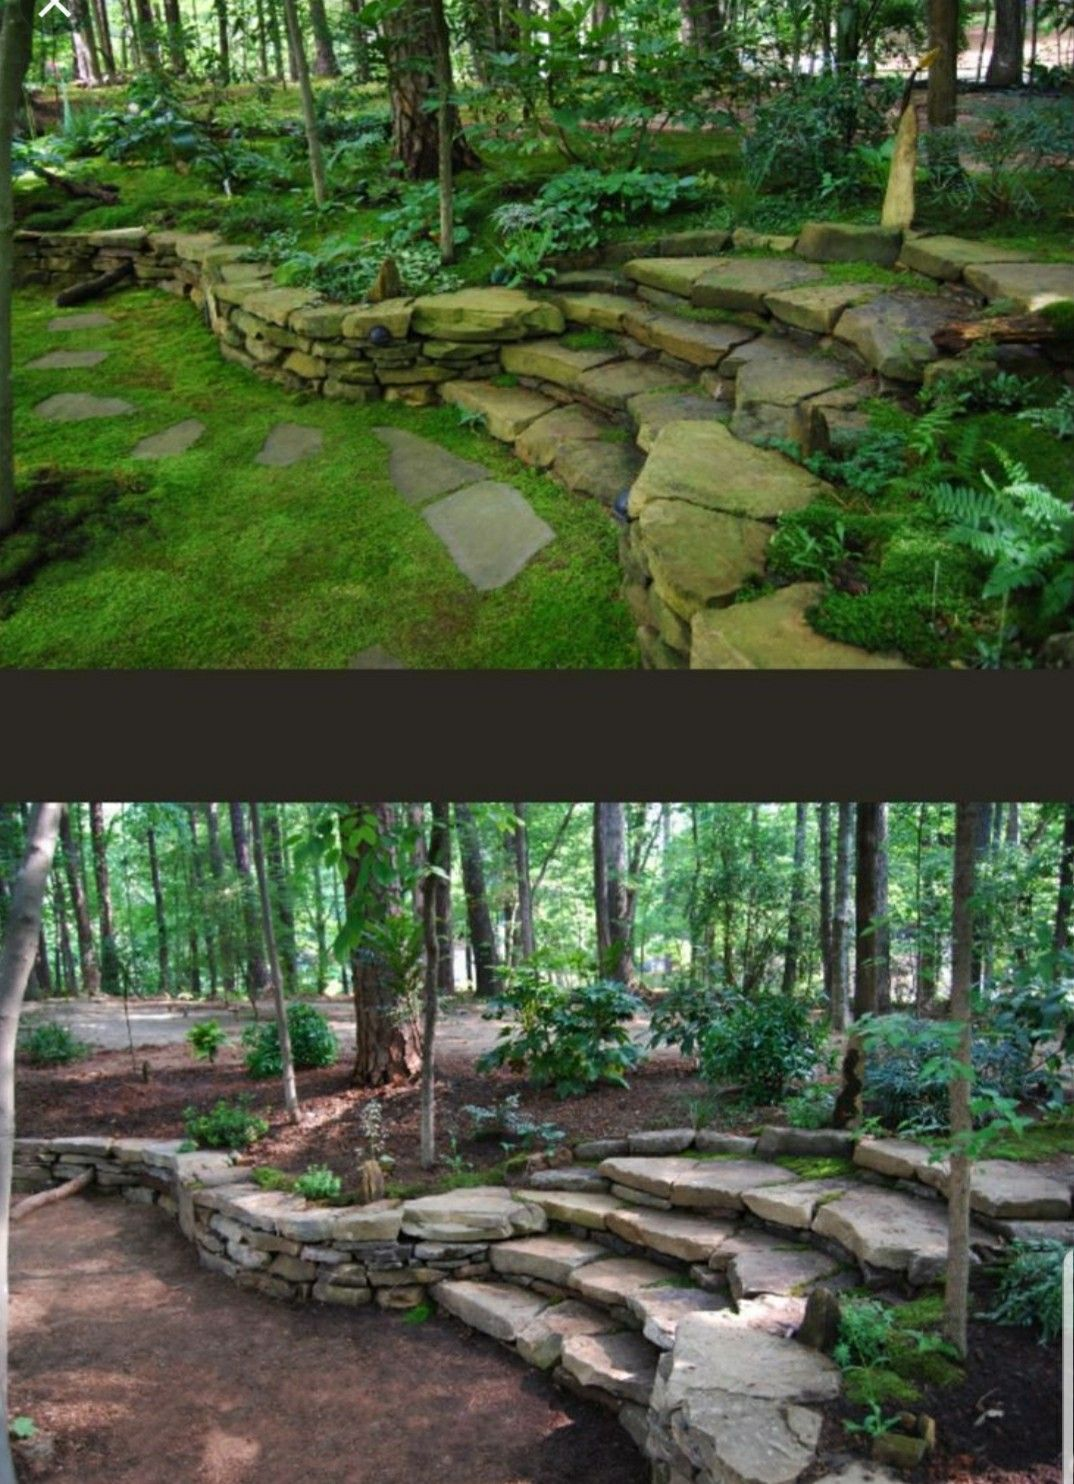 Pin by Bobby Redondo on Landscaping/Rock Garden Ideas ... Ideas For Wooded Backyards on ideas for muddy backyards, ideas for sloping backyards, ideas for sloped backyards,